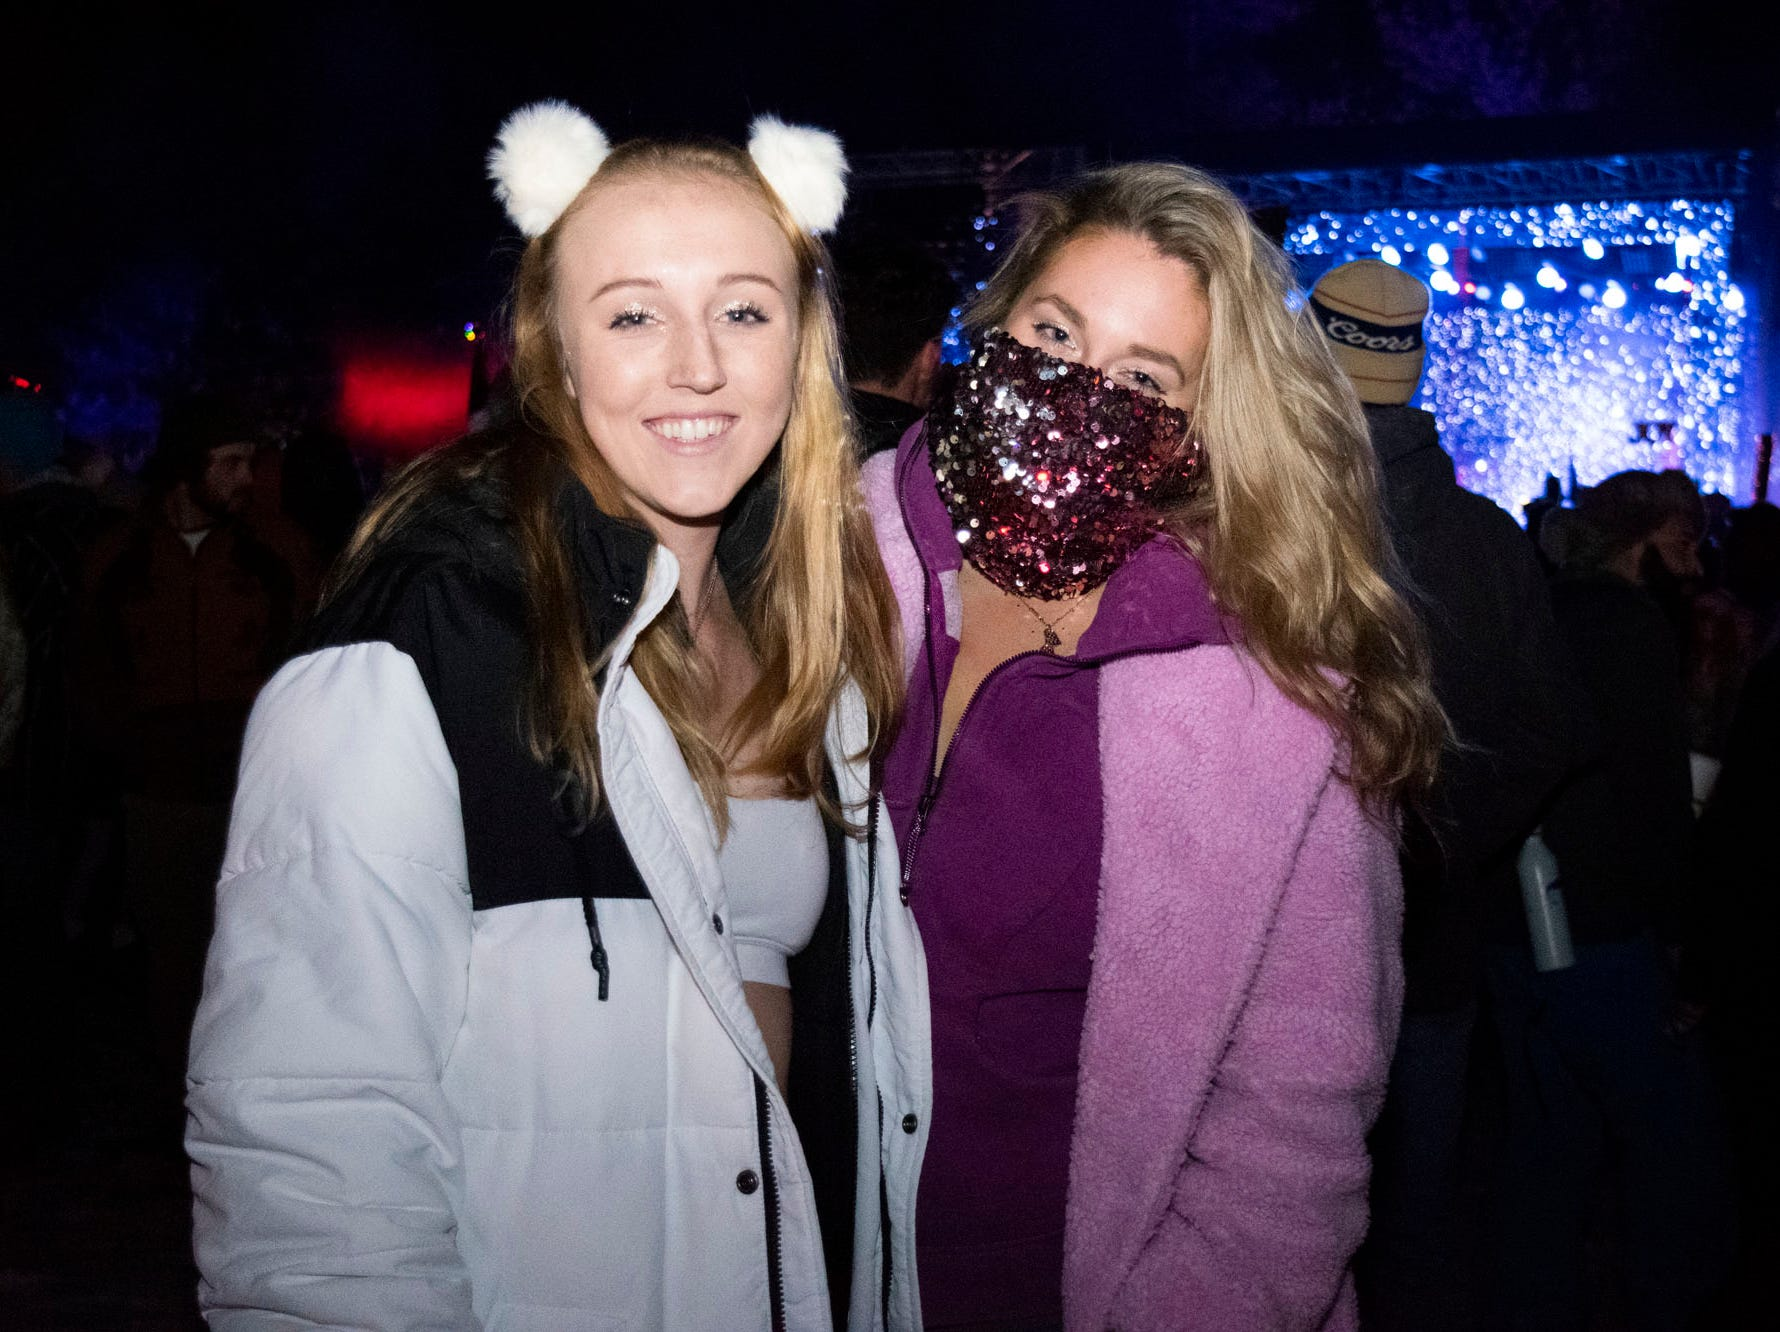 Sarah Smith and Sophie Spybrook attend the Snowglobe Music Festival on Saturday, Dec. 29, 2018. South Lake Tahoe, Calif.